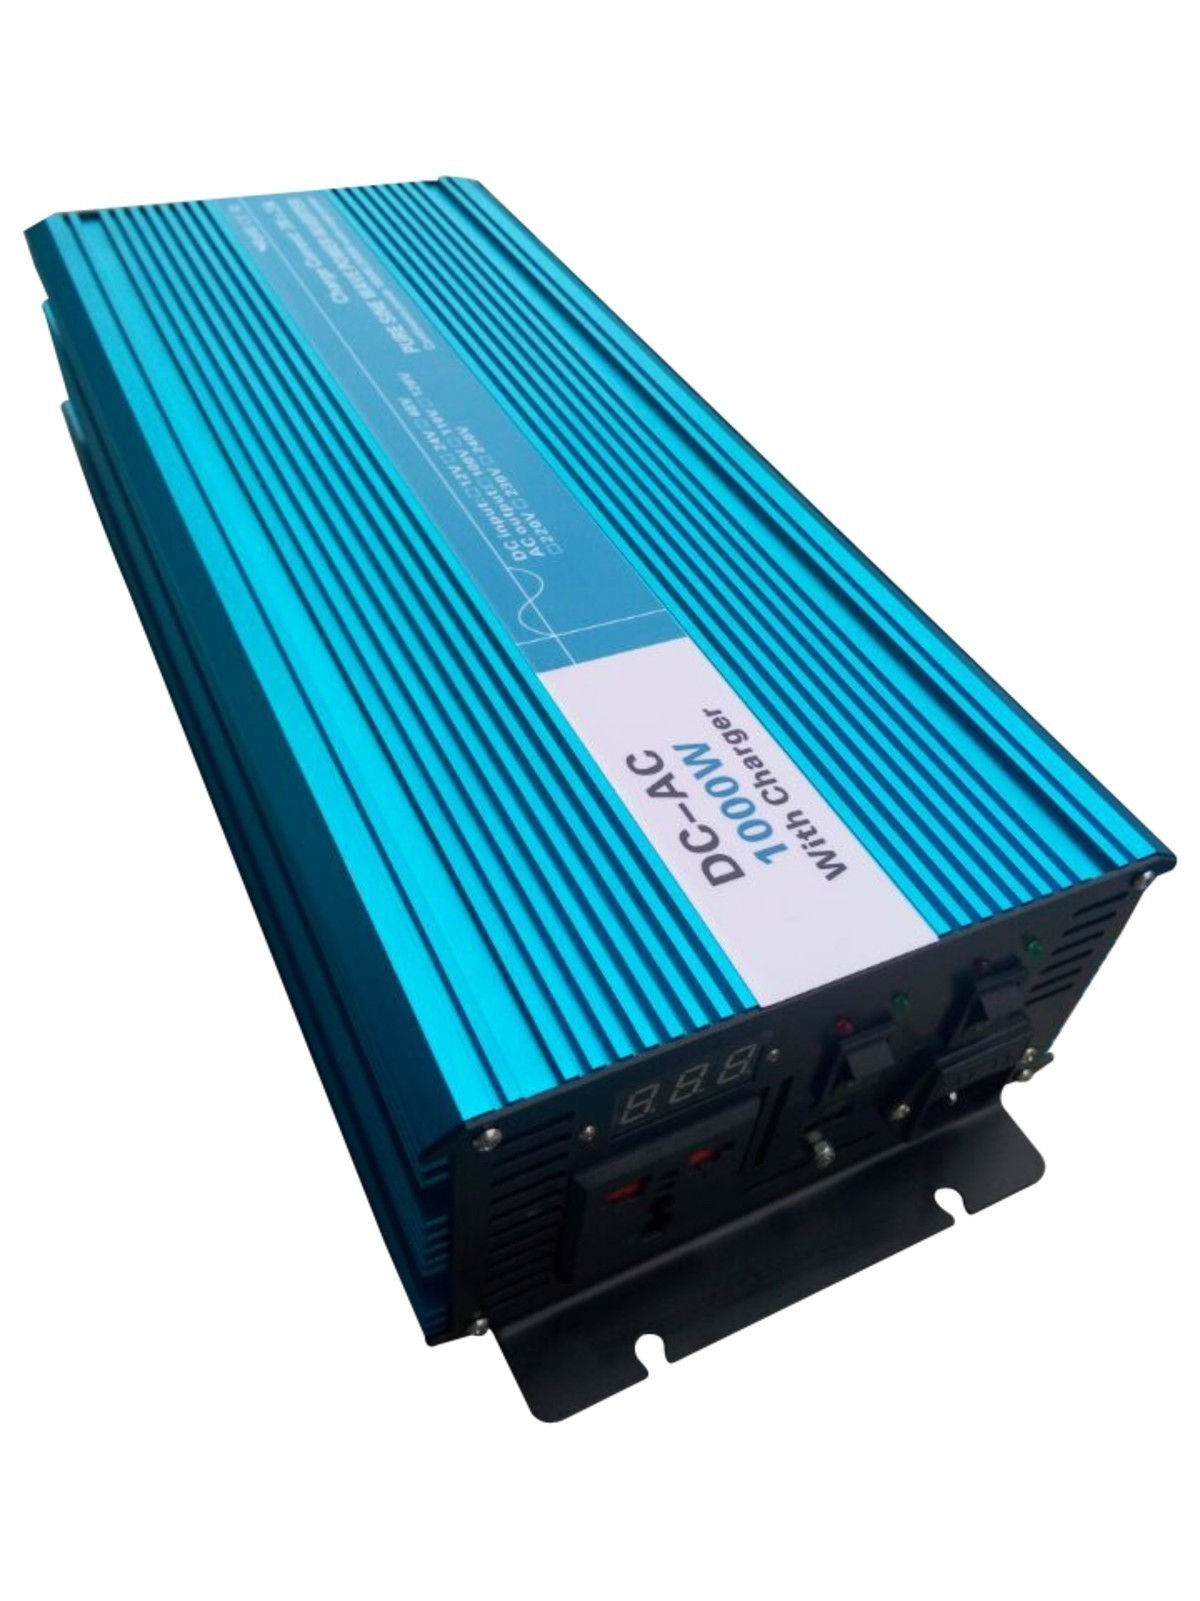 1000W Pure Sine Wave Inverter,DC 12V/24V/48V To AC 110V/220V,off Grid Solar power Inverter,voltage Converter with charger/UPS 1000w pure sine wave inverter dc 12v 24v 48v to ac 110v 220v off grid solar power inverter voltage converter with charger ups